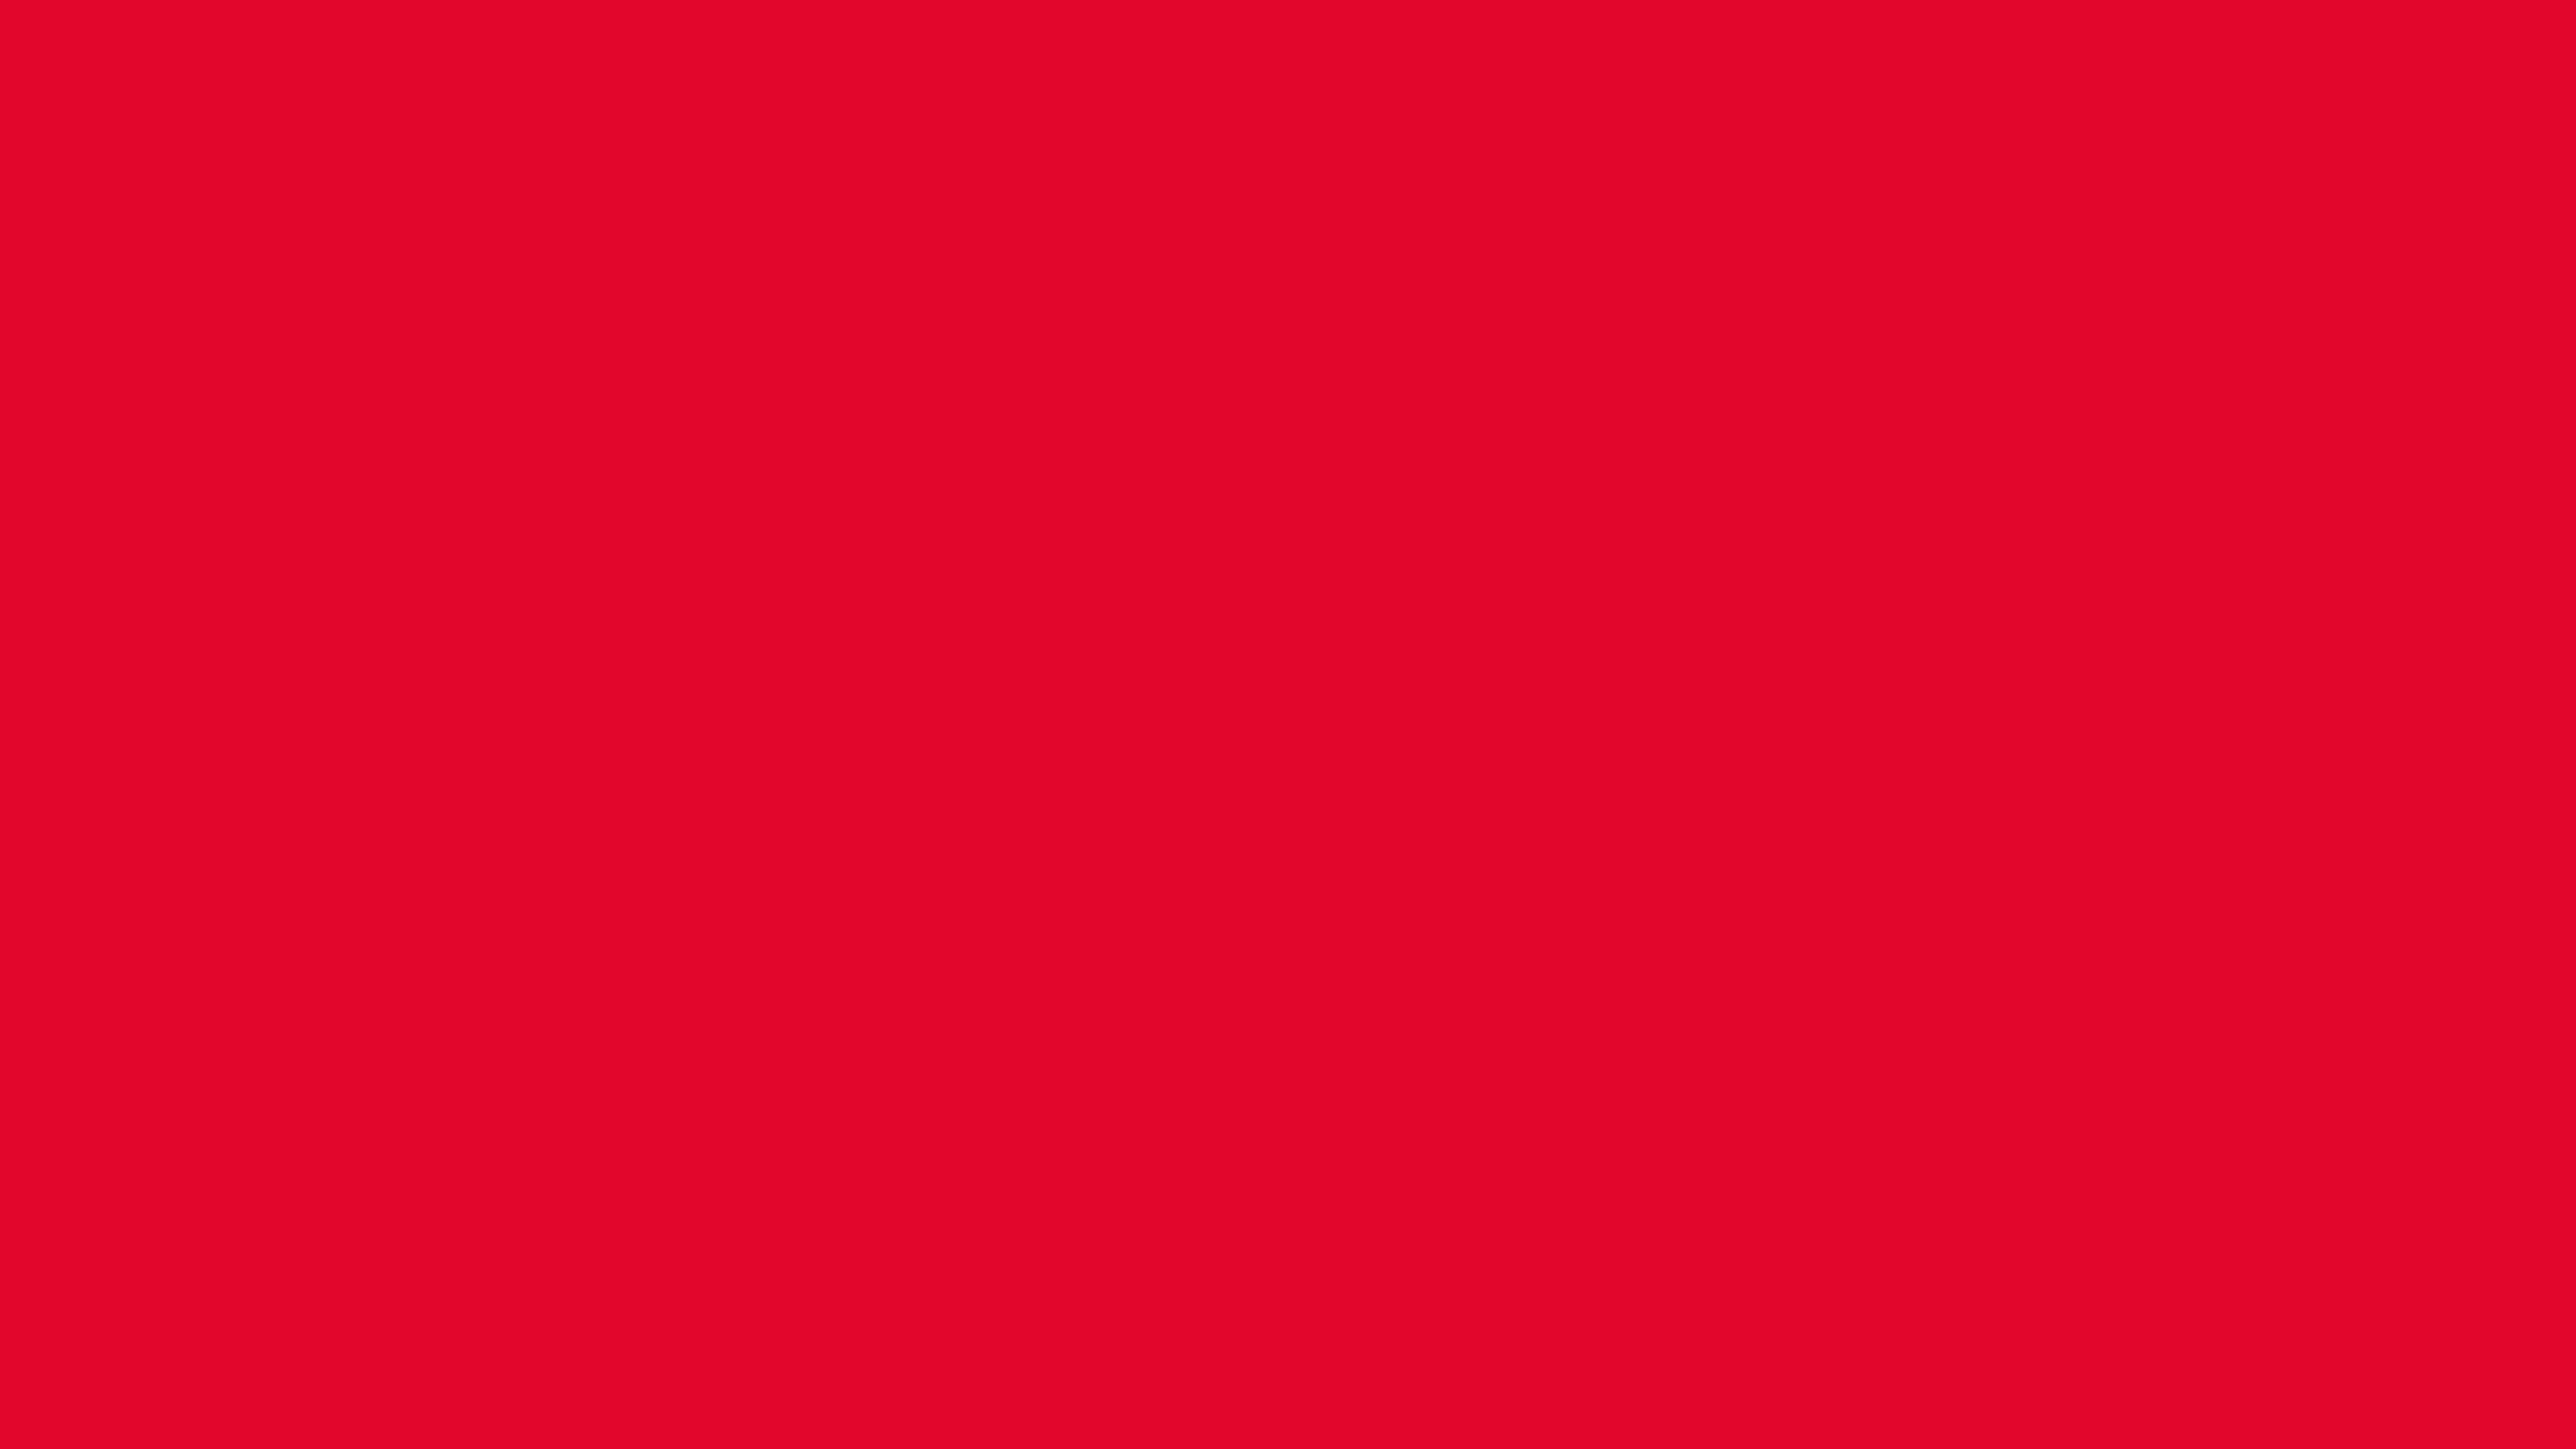 4096x2304 Medium Candy Apple Red Solid Color Background